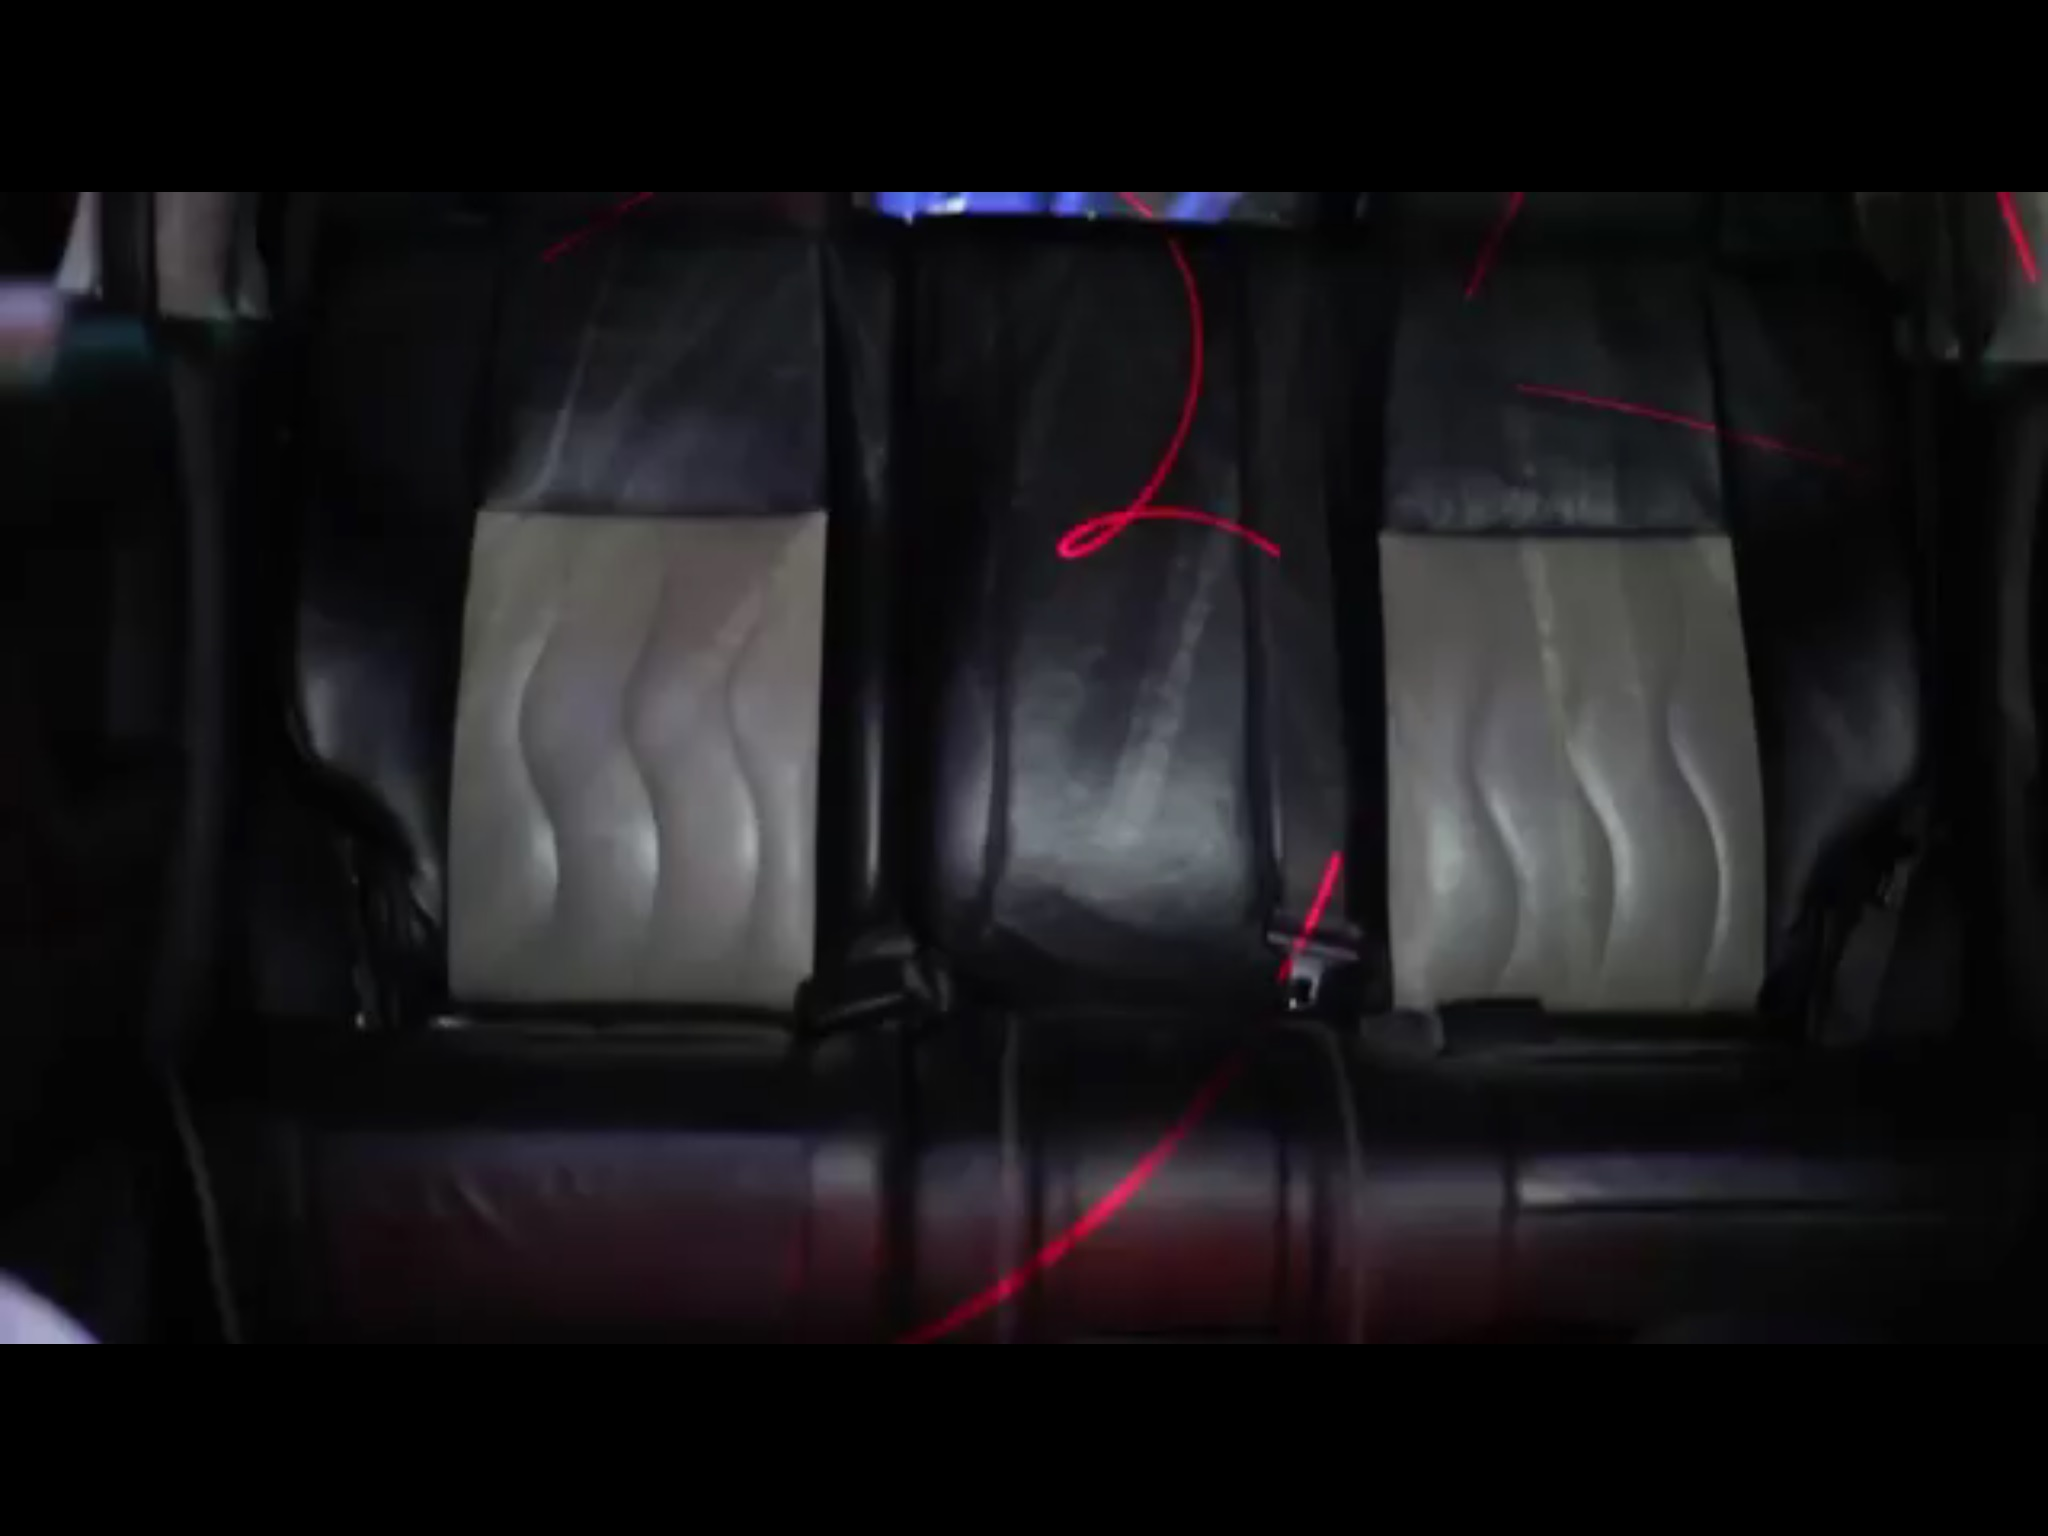 H3 Limo back seat